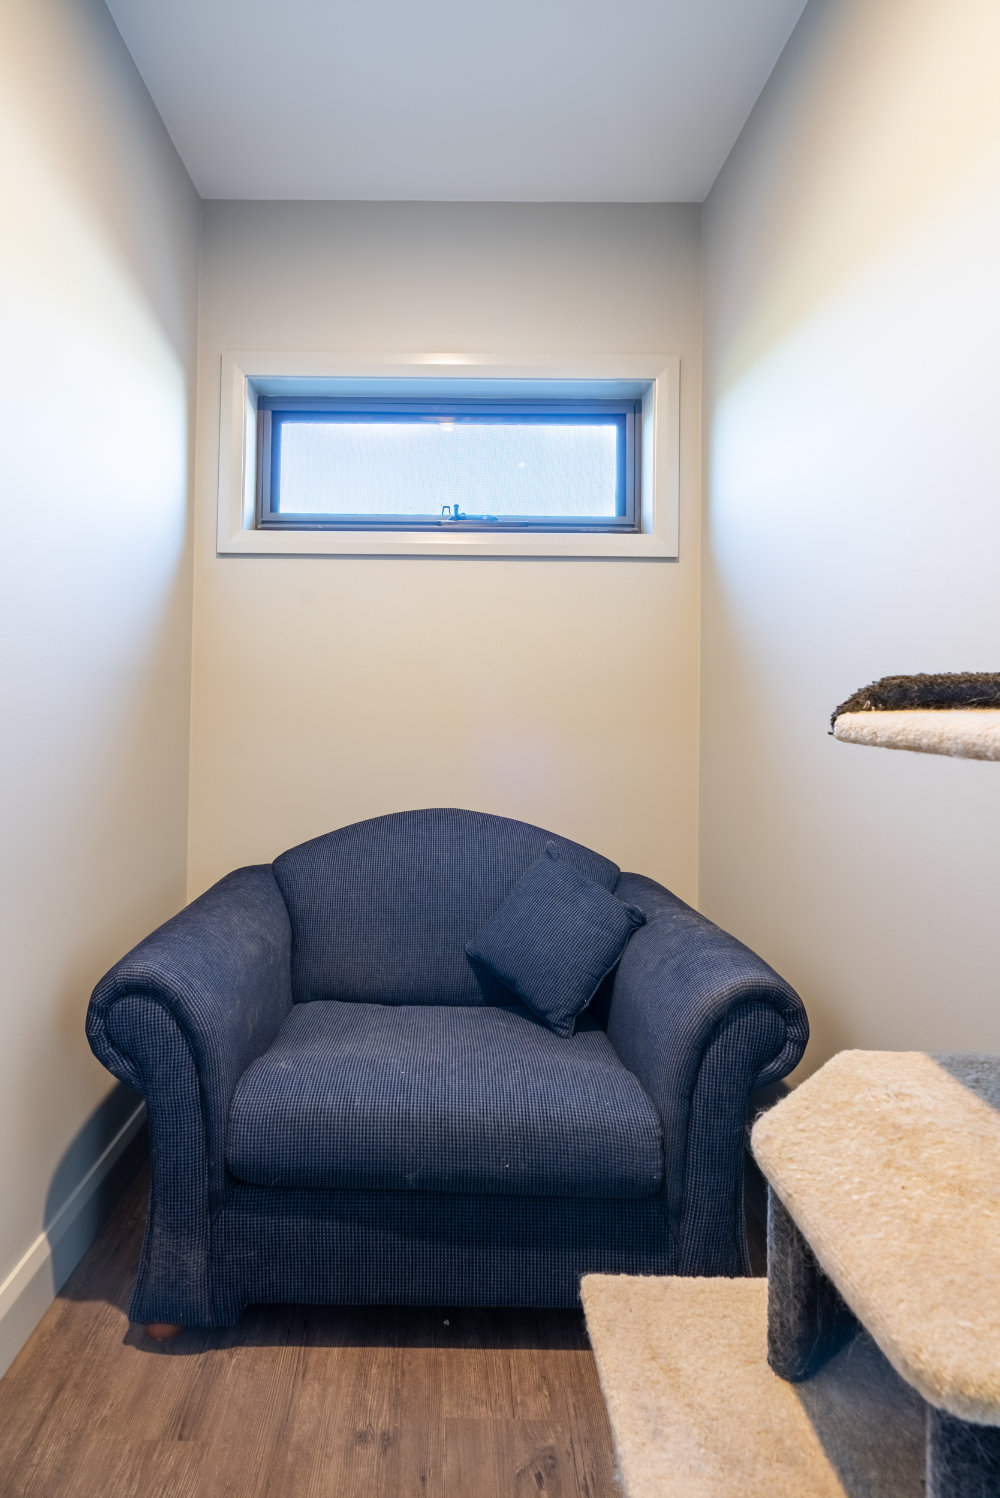 Executive Suite inside view